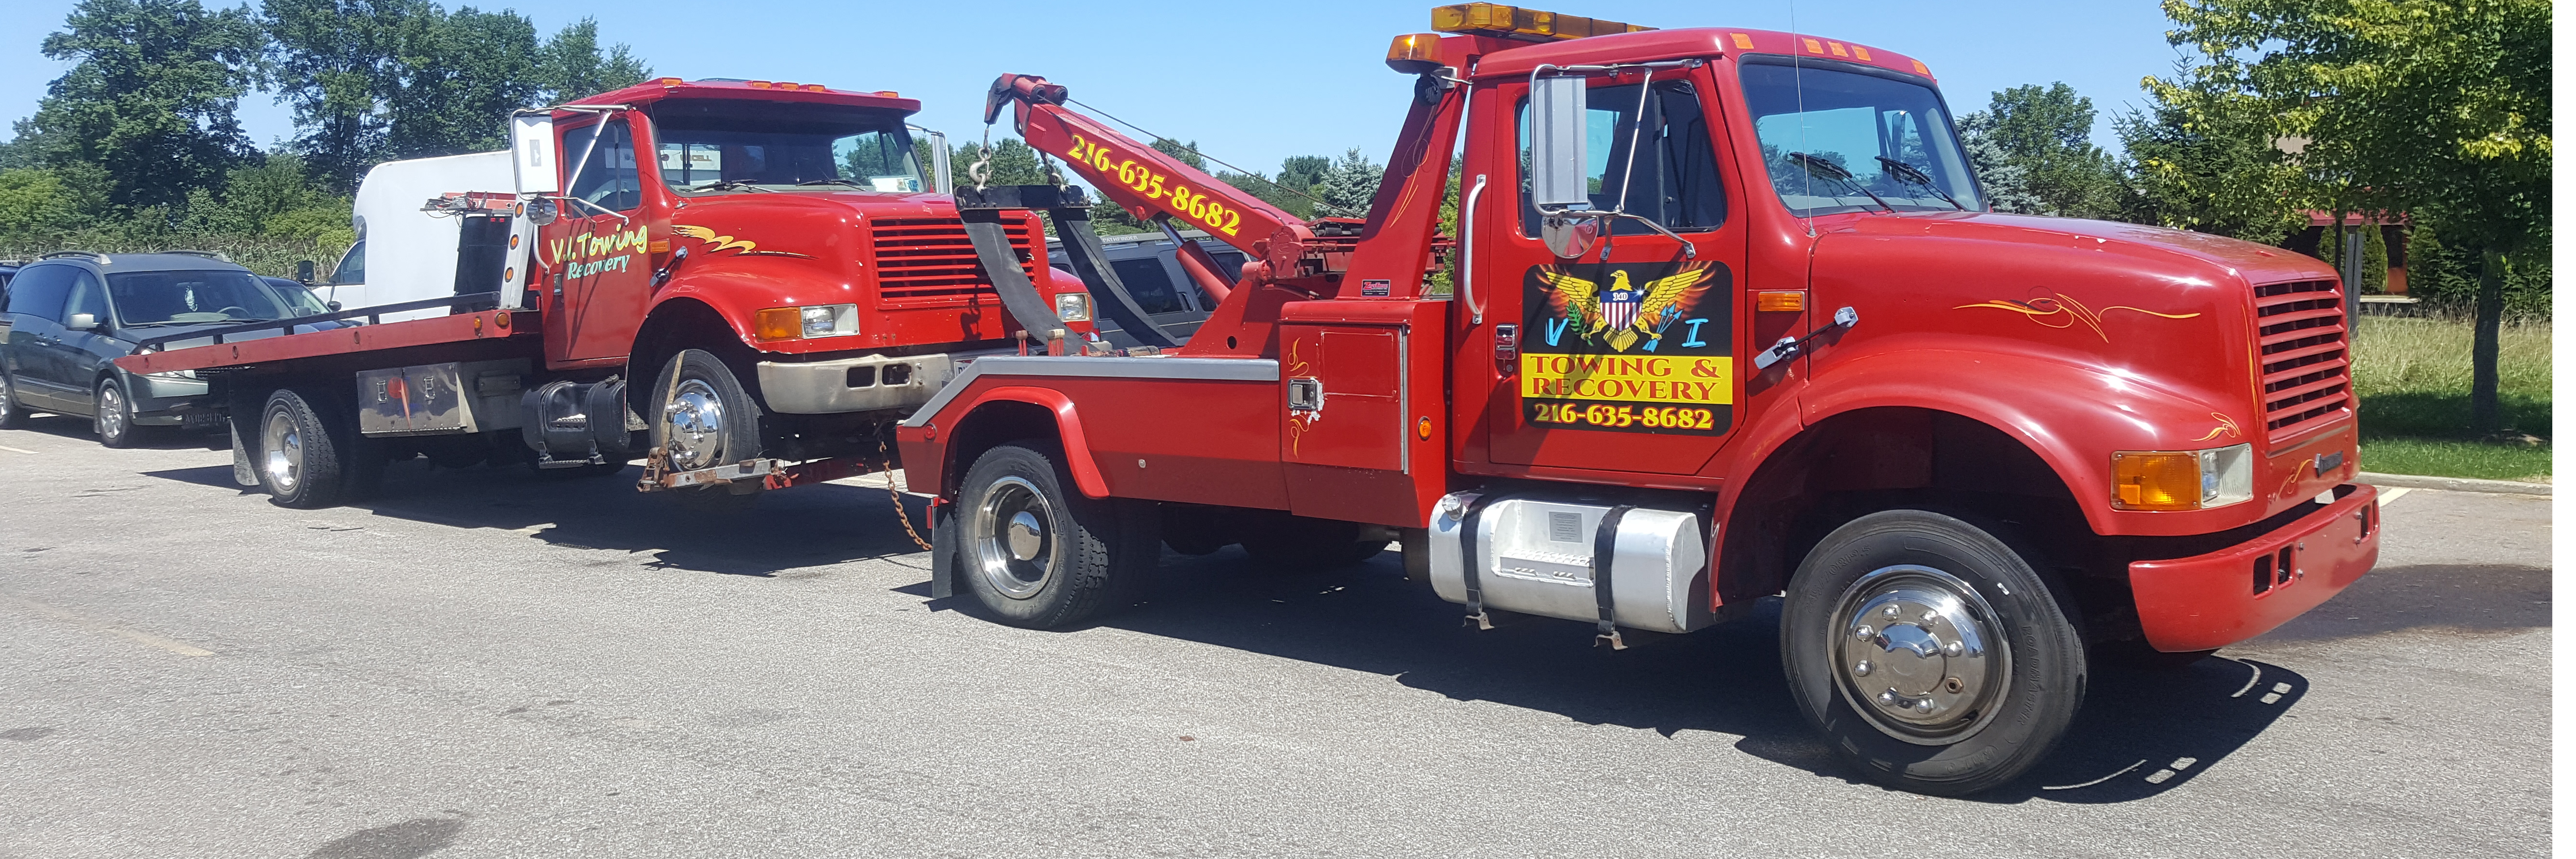 VI TOWING & RECOVERY INC. Towing.com Profile Banner